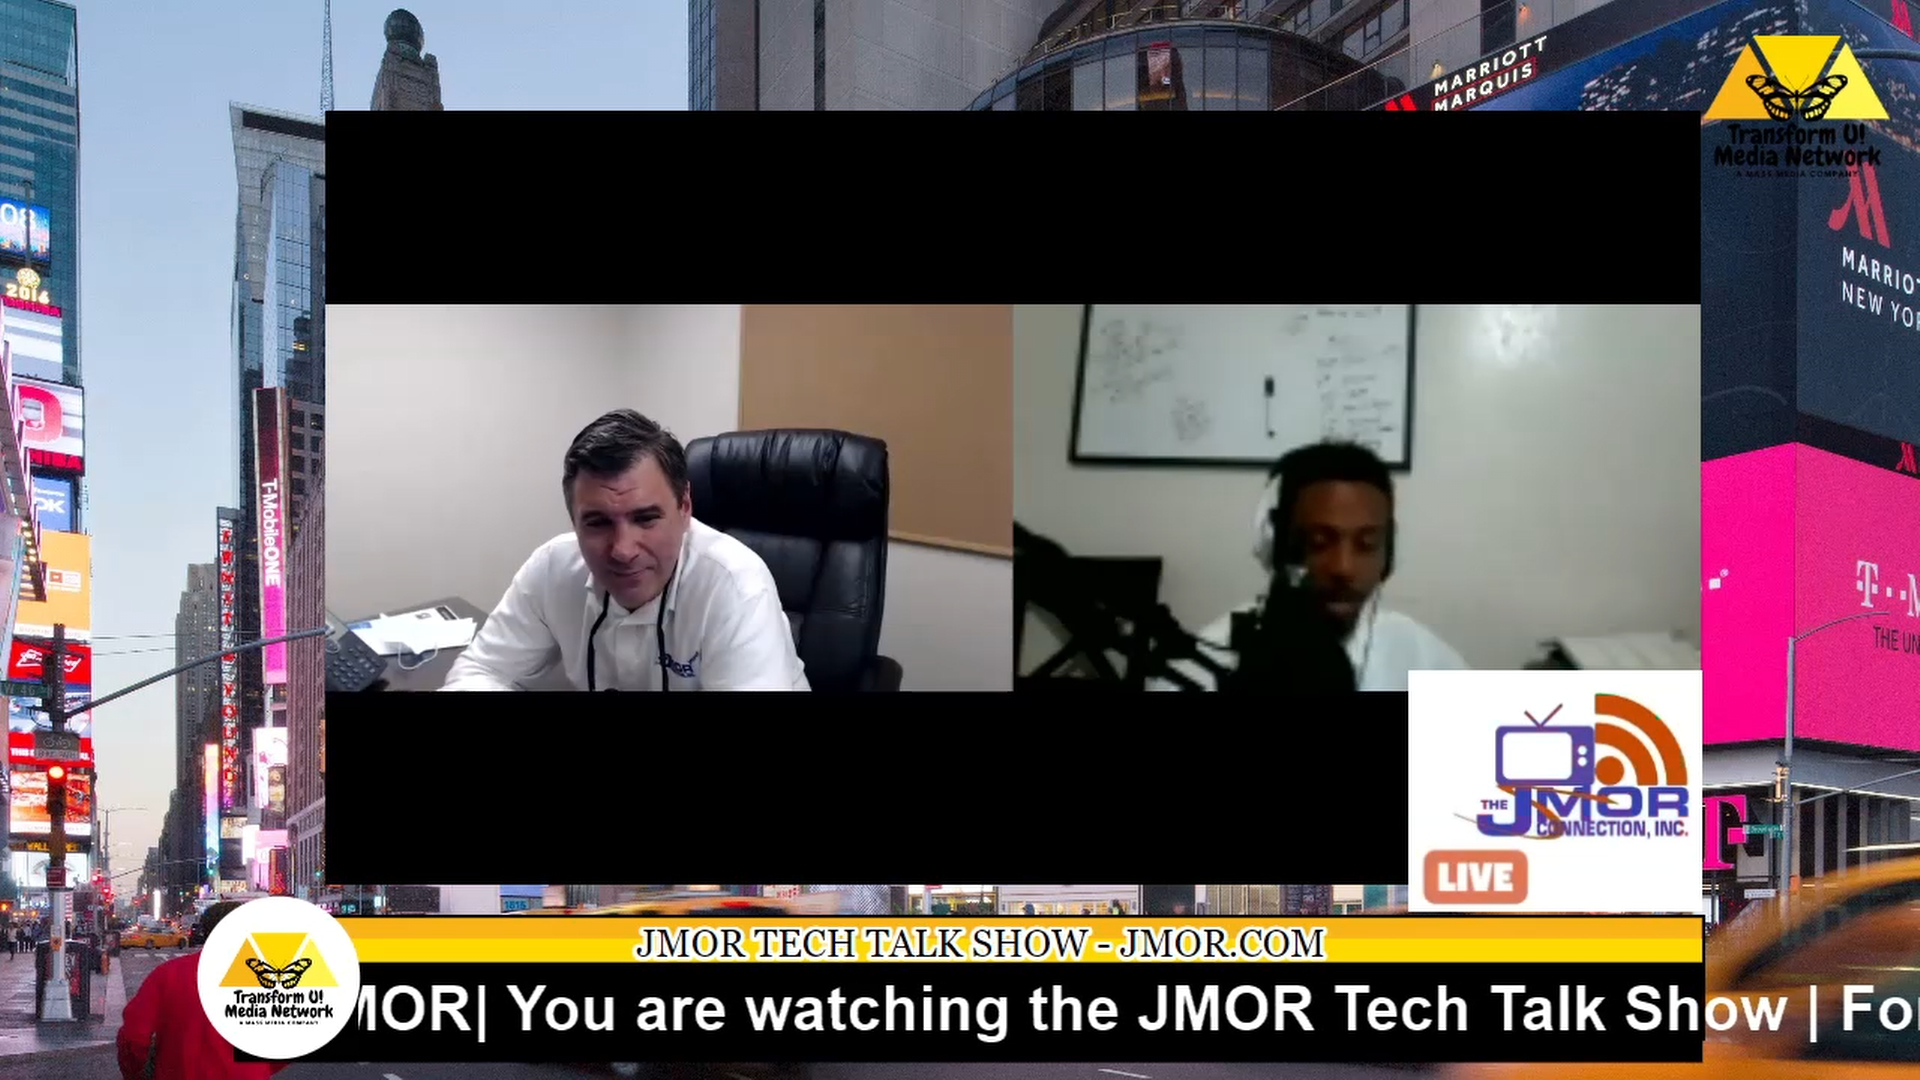 JMOR Tech Talk Show Jan 8, 2021:  Happy New Year and BoAT and Karl J Weaver